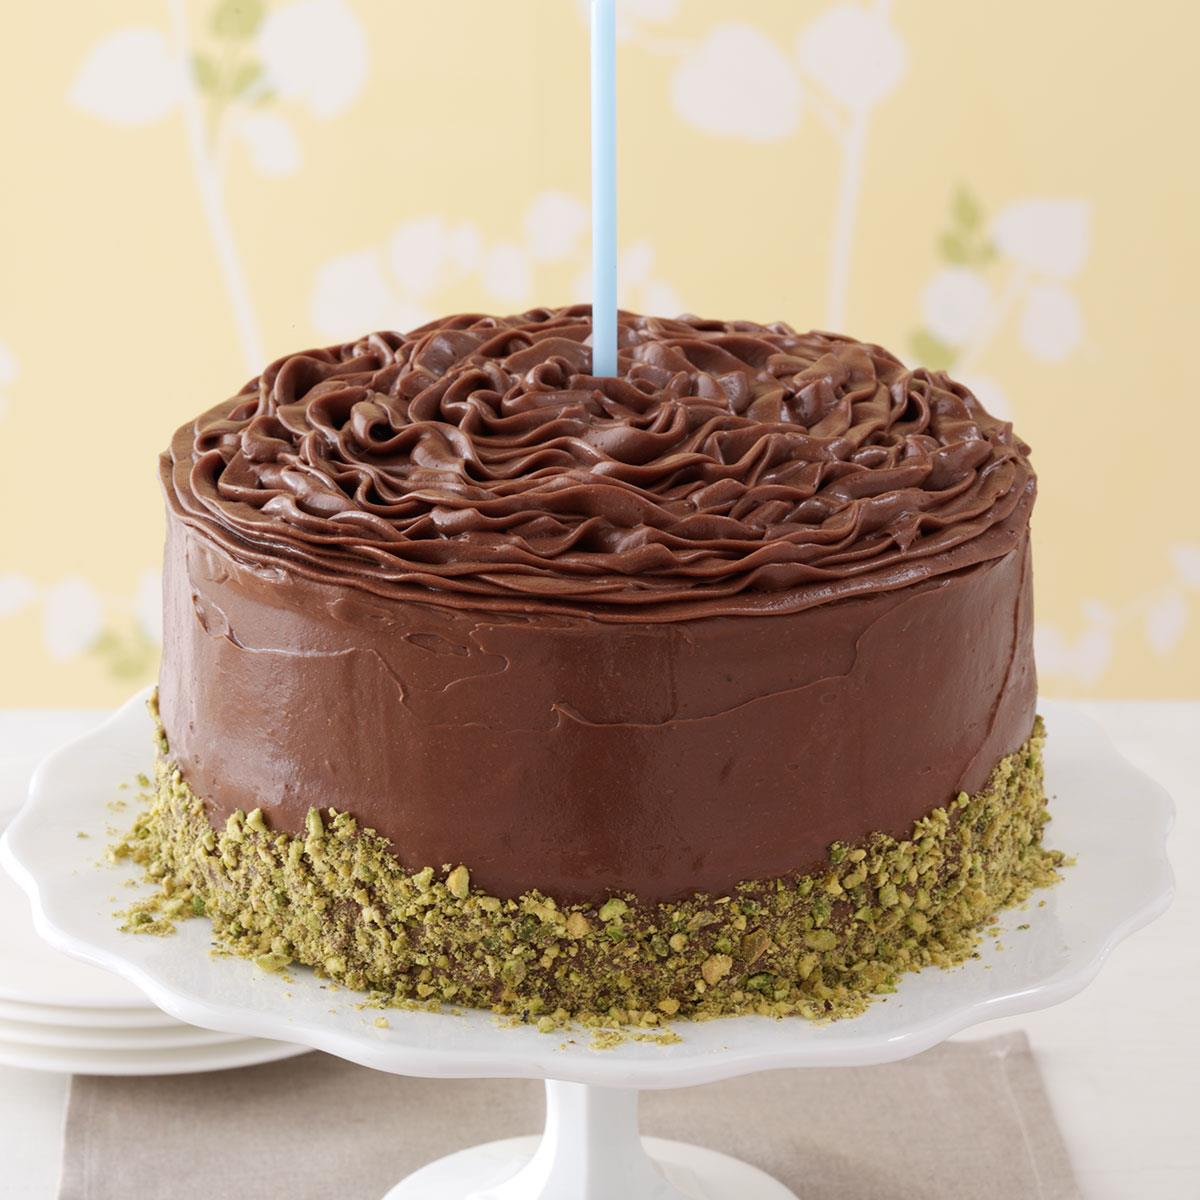 Sensational Banana Cake With Chocolate Frosting Recipe Taste Of Home Funny Birthday Cards Online Inifofree Goldxyz